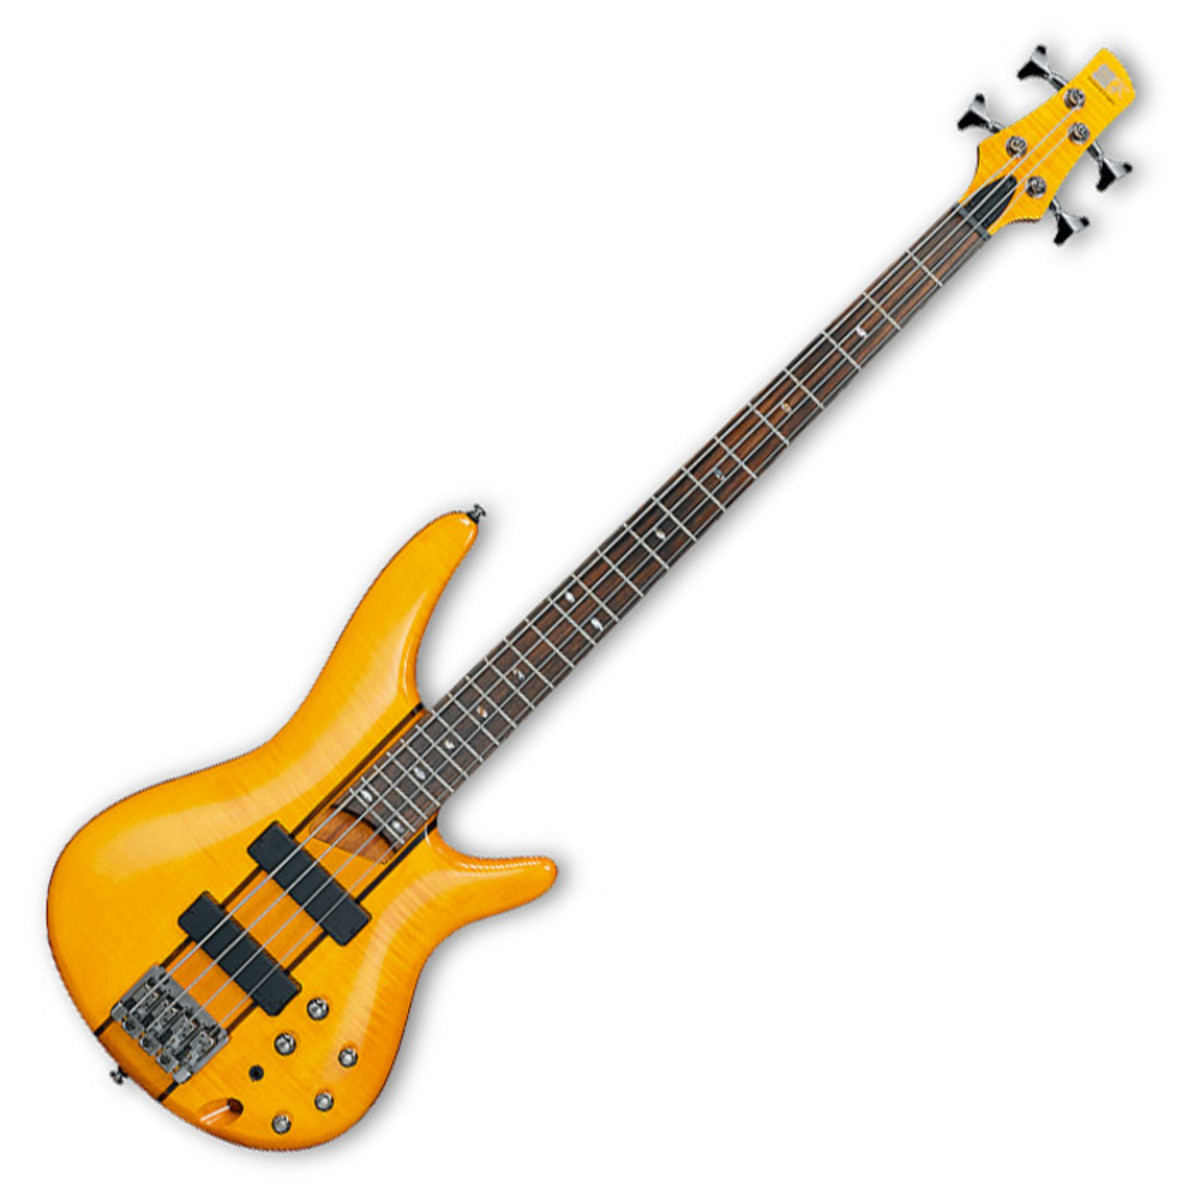 ibanez sr700 bass guitar compare prices at foundem. Black Bedroom Furniture Sets. Home Design Ideas